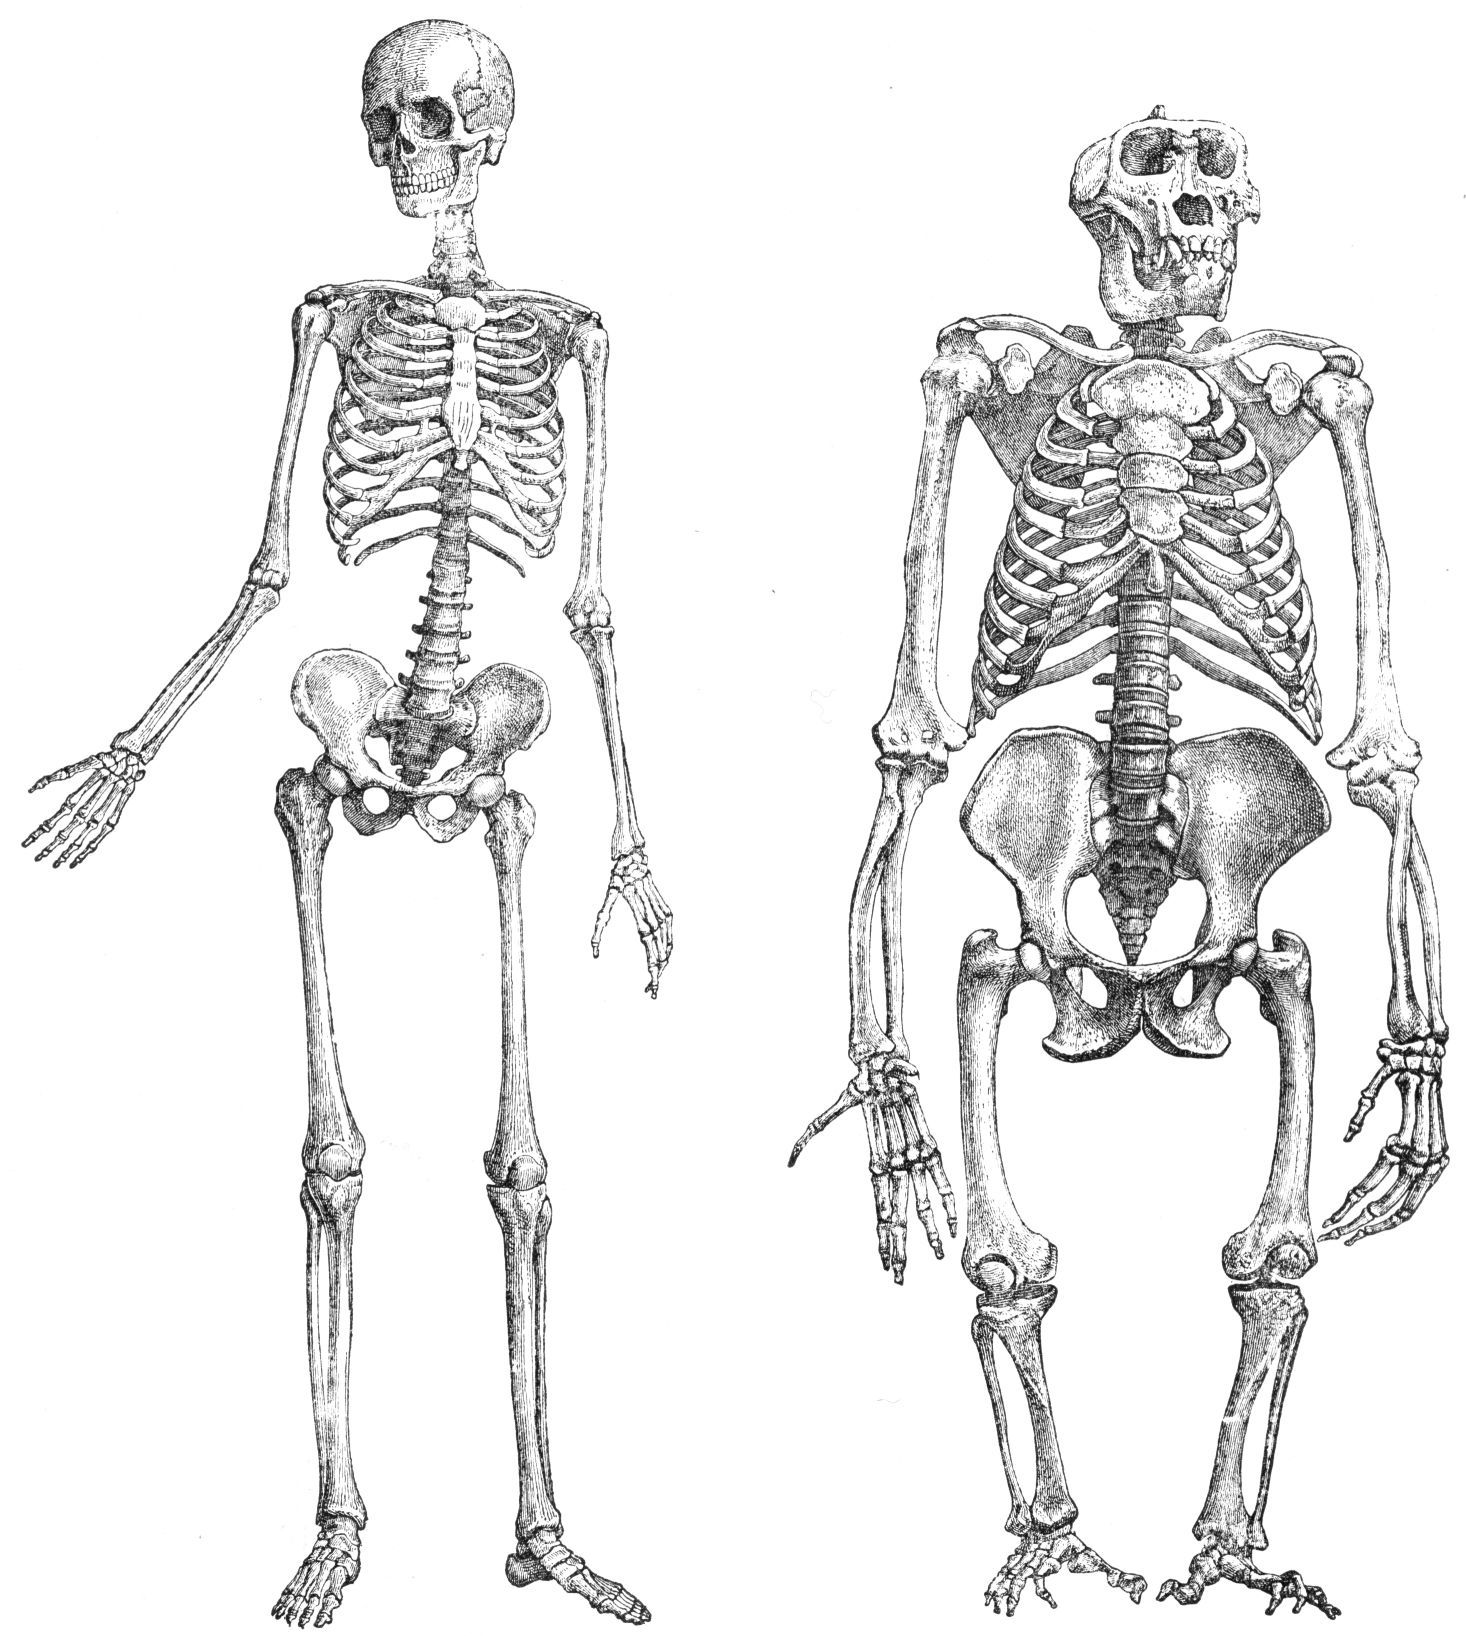 gibbon human chimpanzee - google search | animal anatomy | pinterest, Skeleton